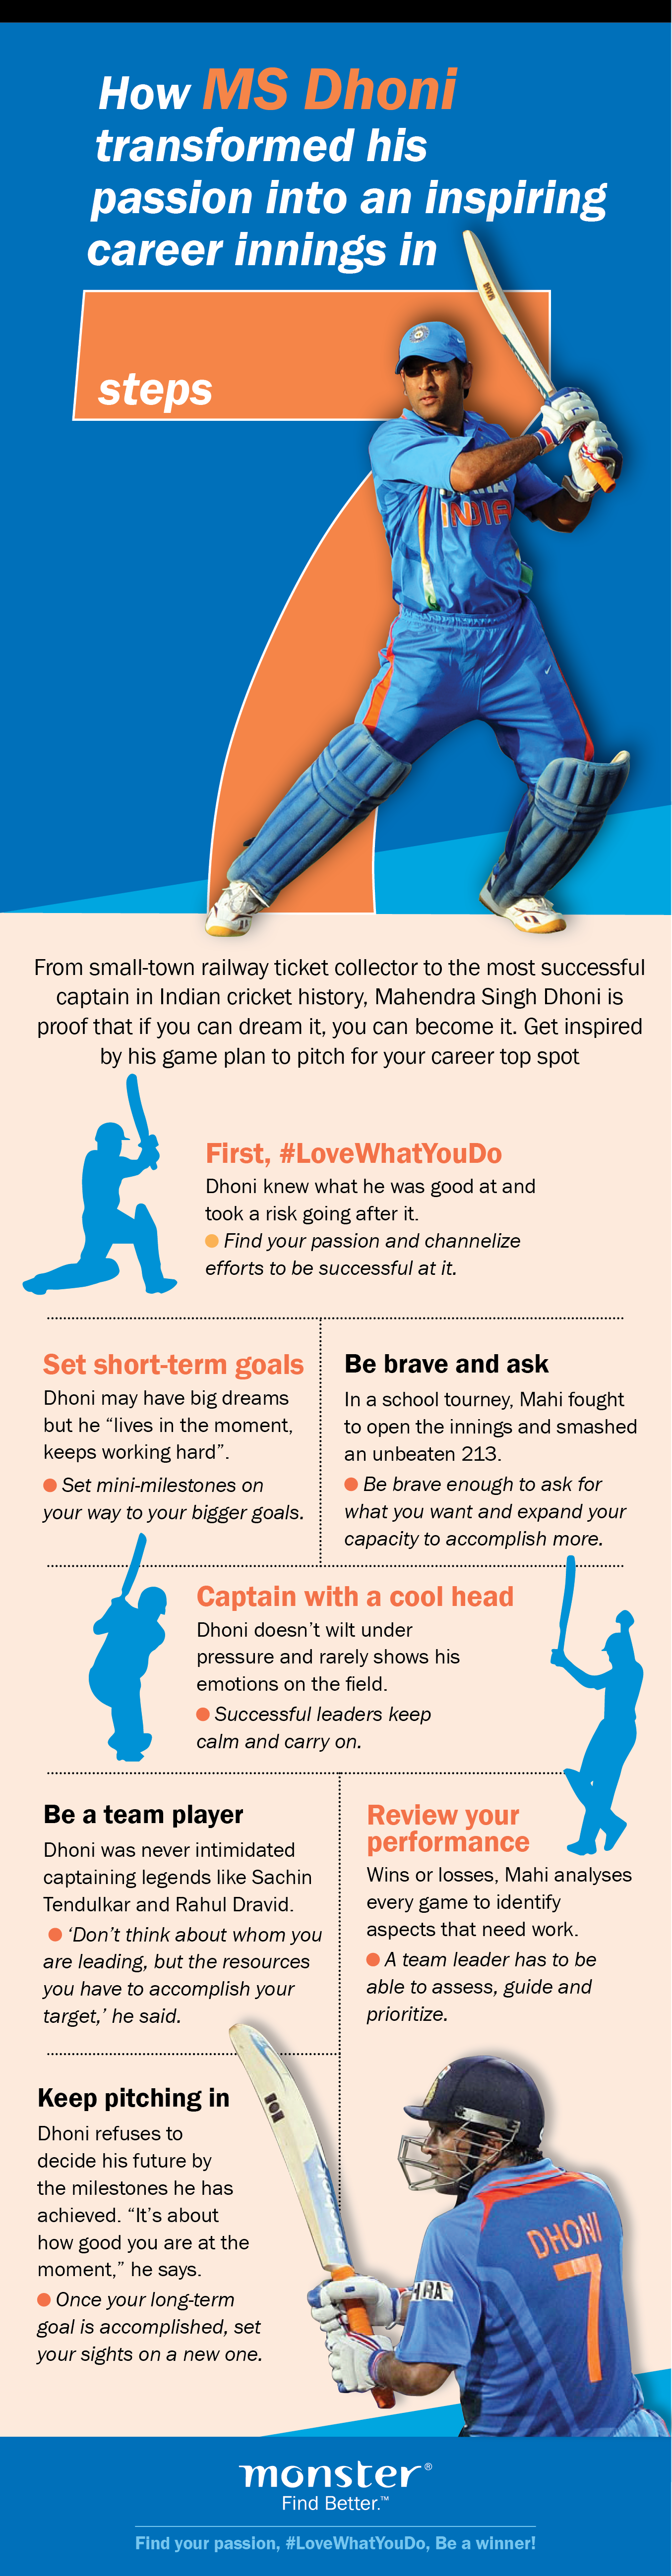 career management how ms dhoni transformed his passion into a ms dhoni career